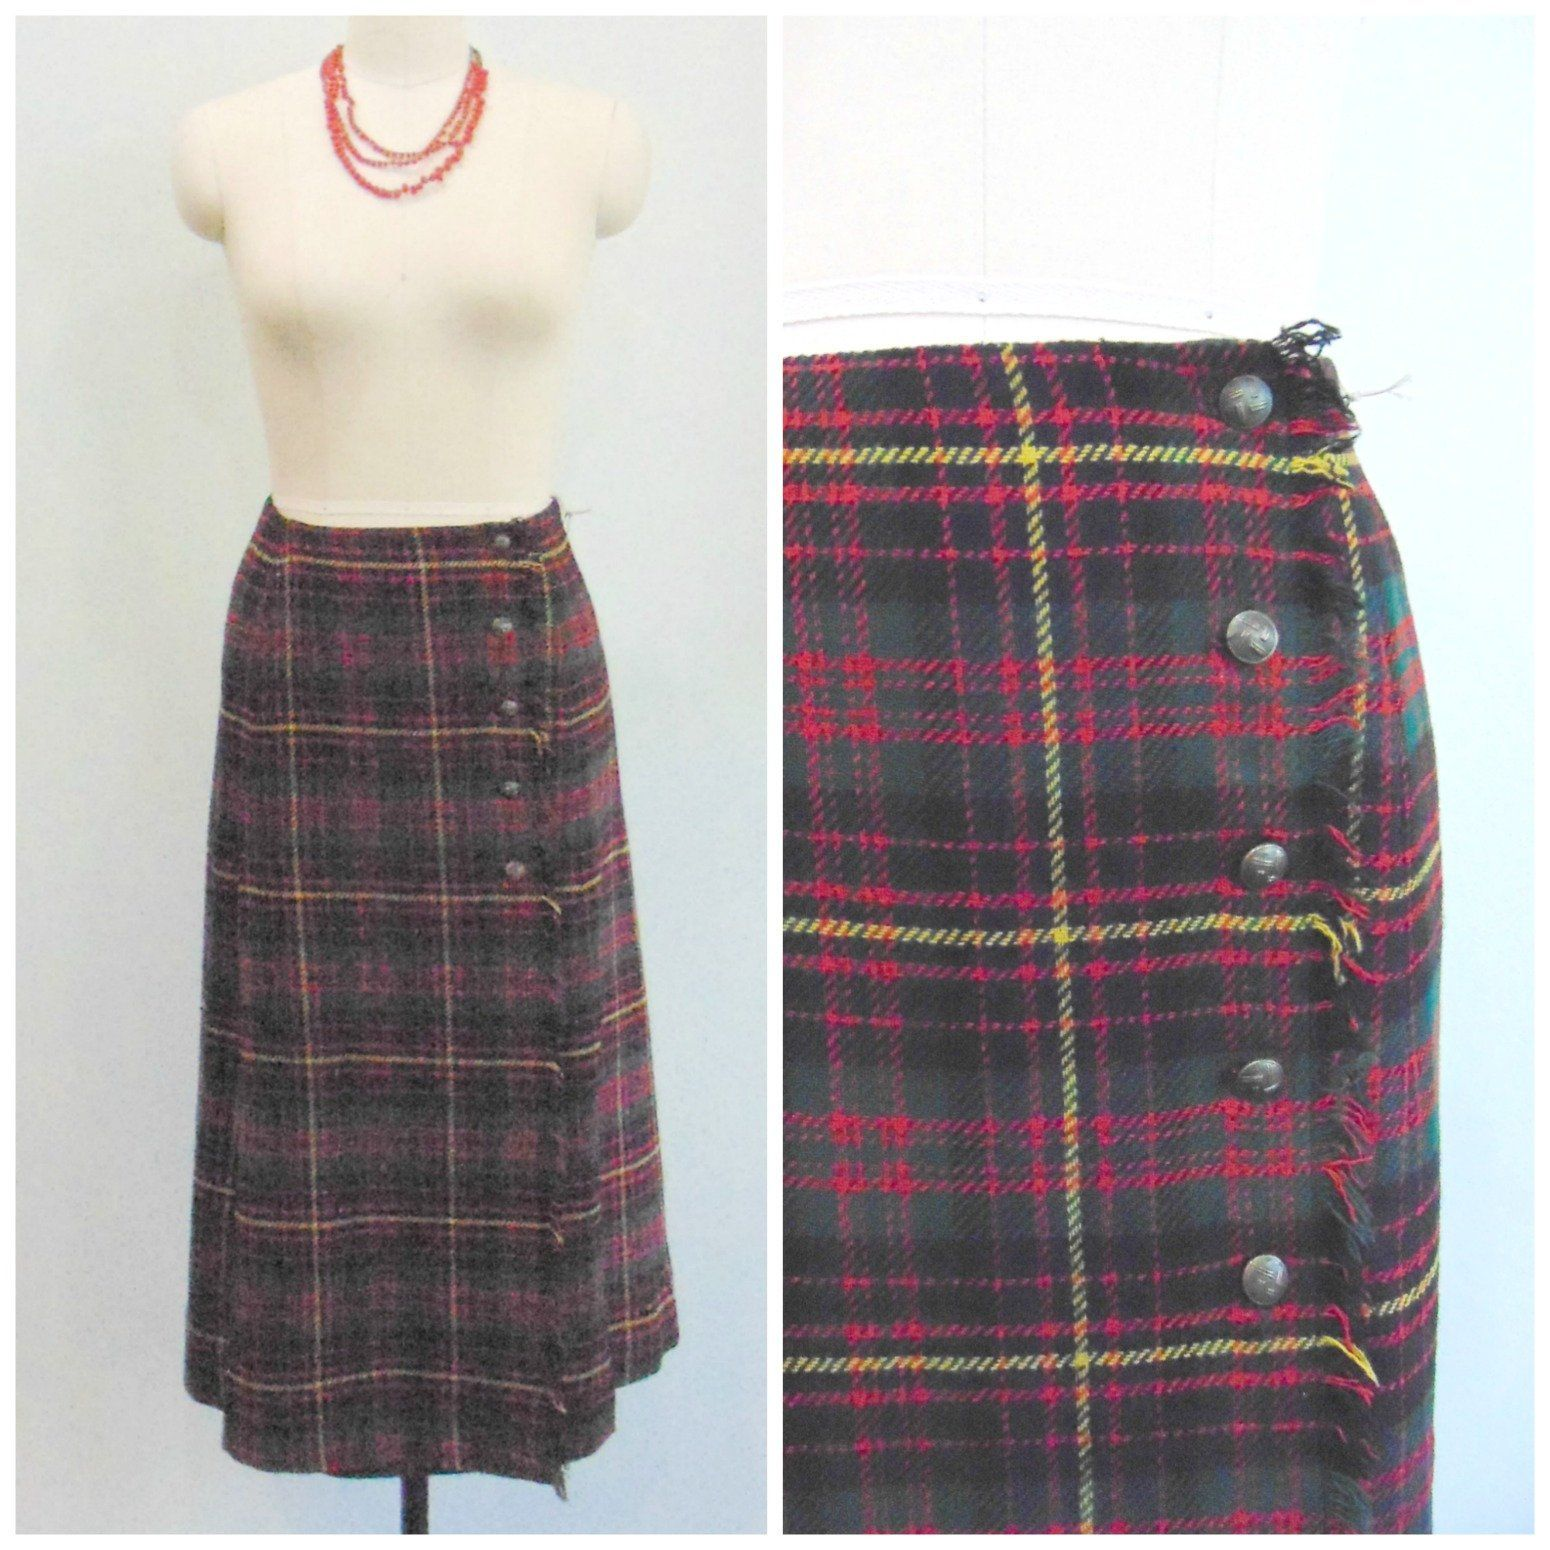 4b0cf6b105 Vintage 1960's Red Plaid Skirt / Tartan Plaid Wrap Skirt / Button Front /  Fringed Wrap / Size Small by HamptonsVintageMrkt on Etsy